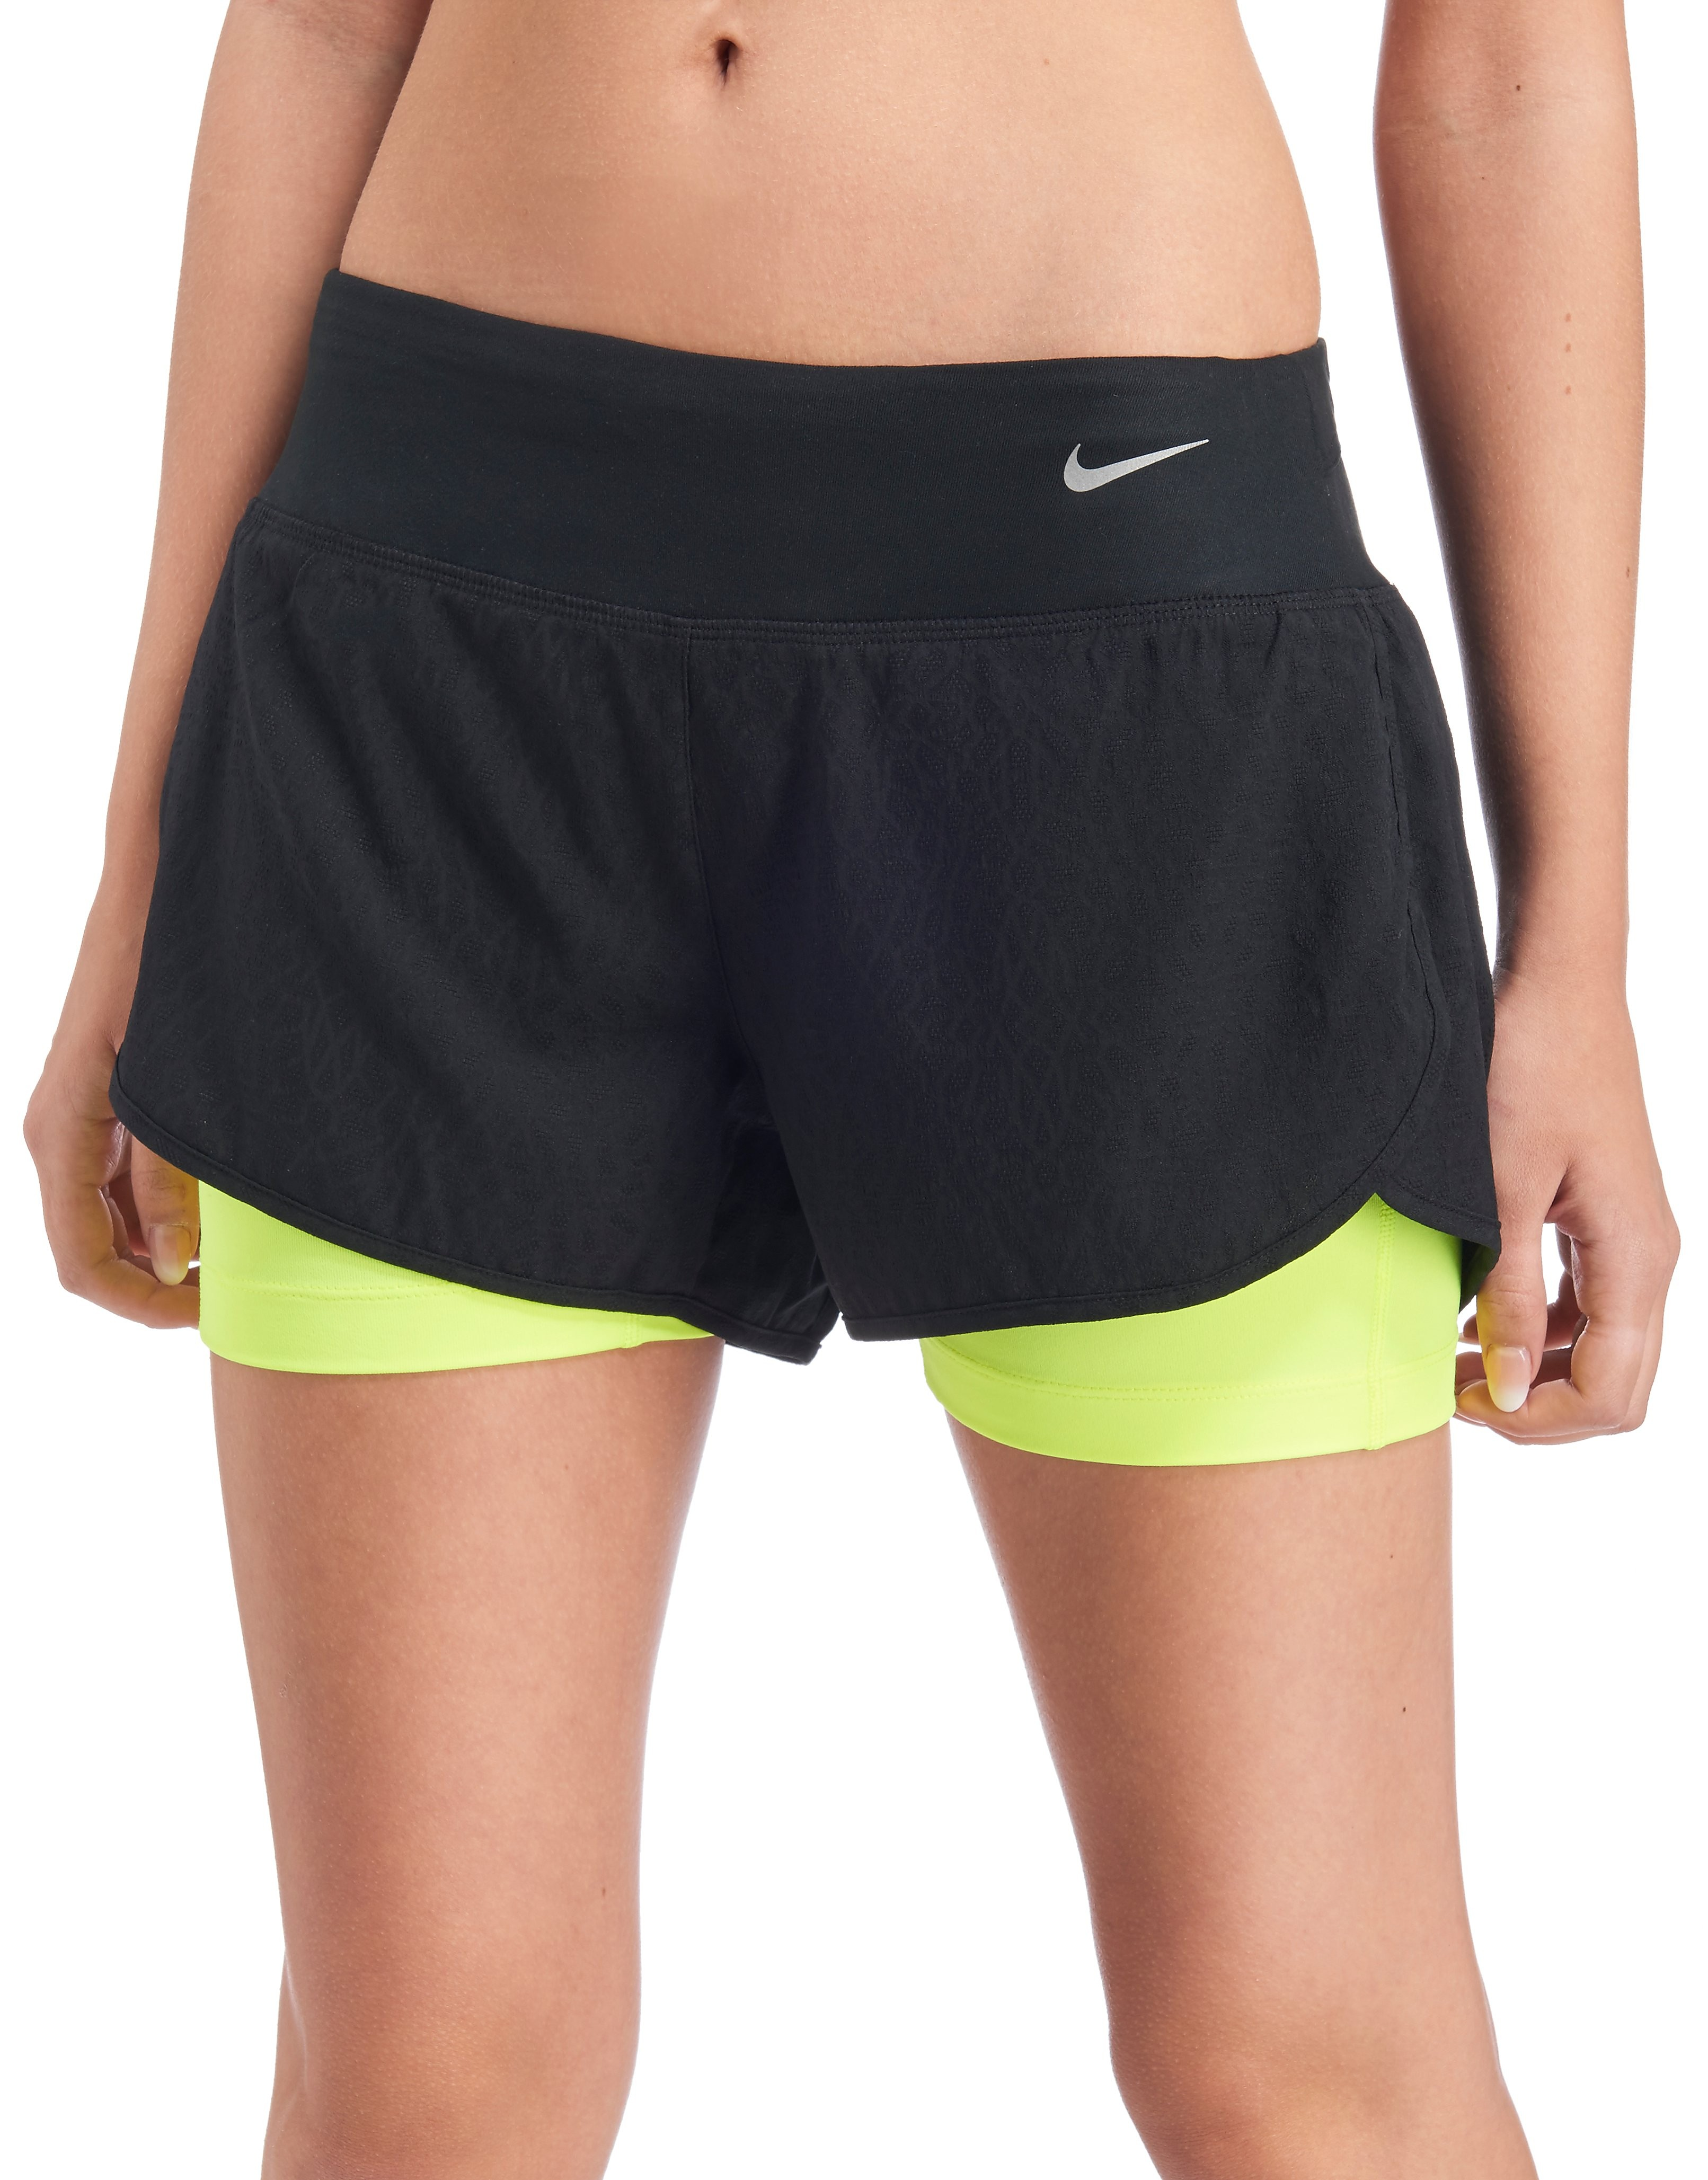 Nike Rival Jacquard 2-In-1 Shorts